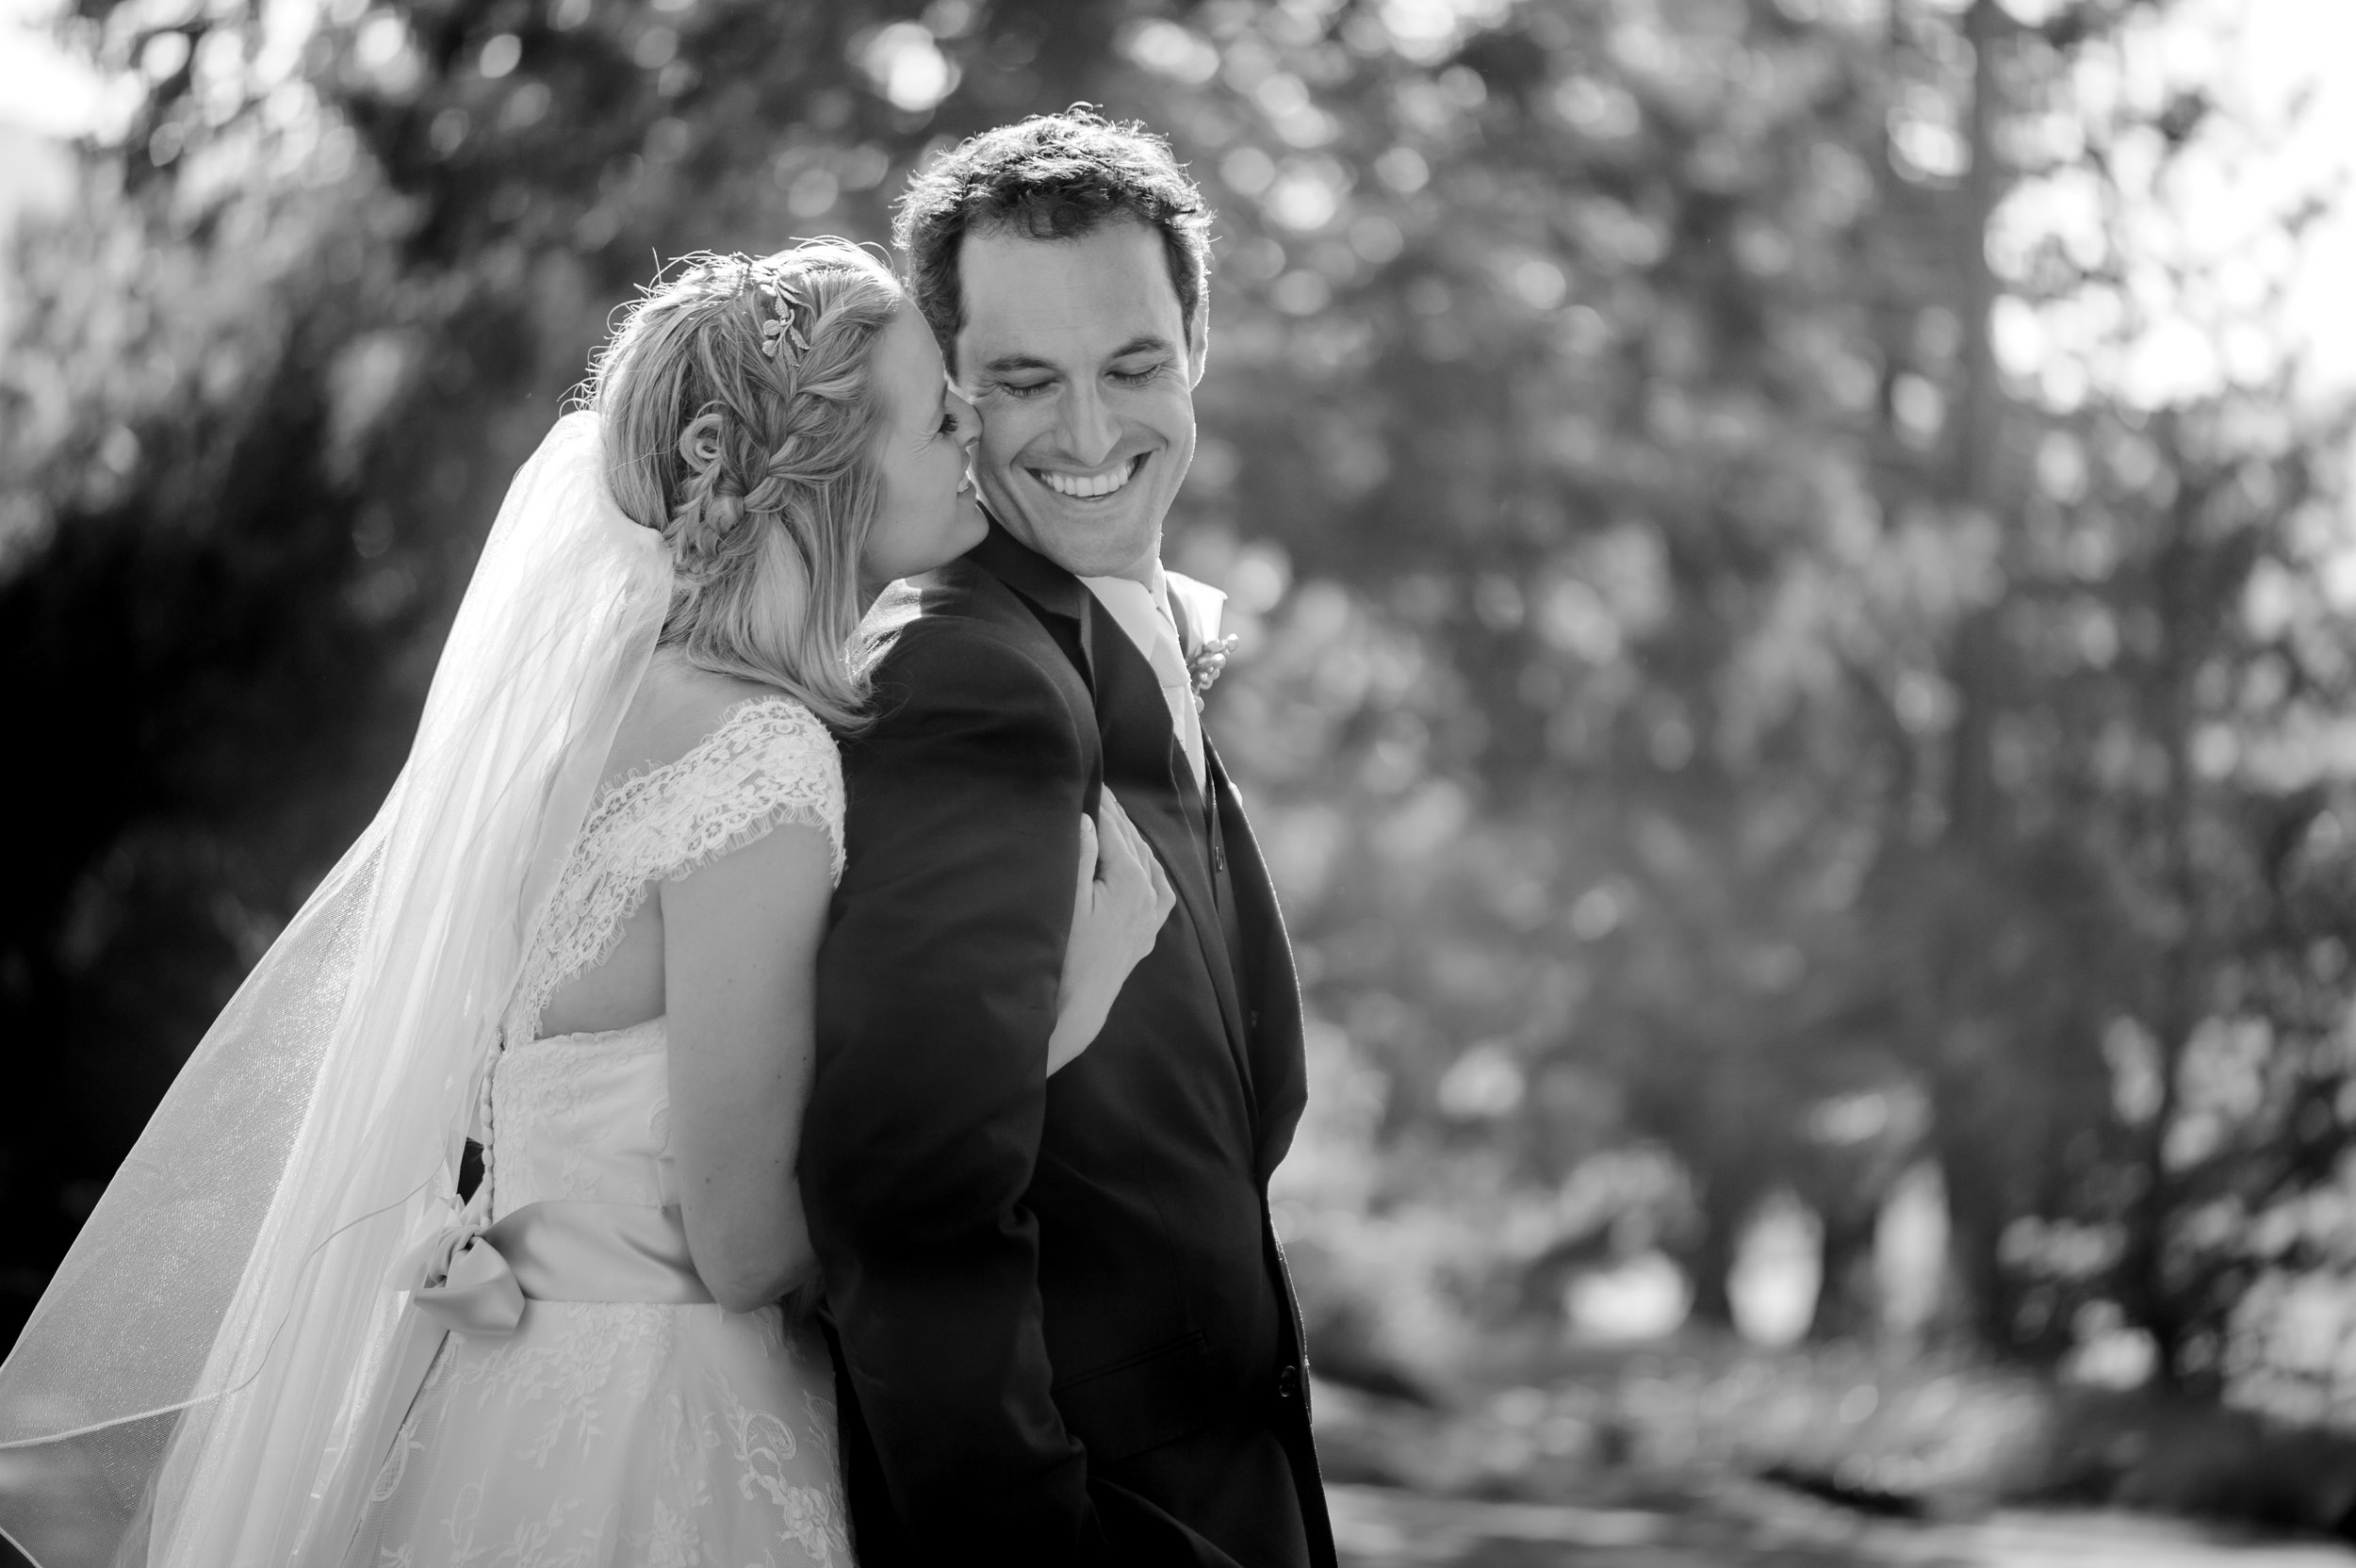 mara-chris-036-backyard-sonoma-wedding-photographer-katherine-nicole-photography.JPG